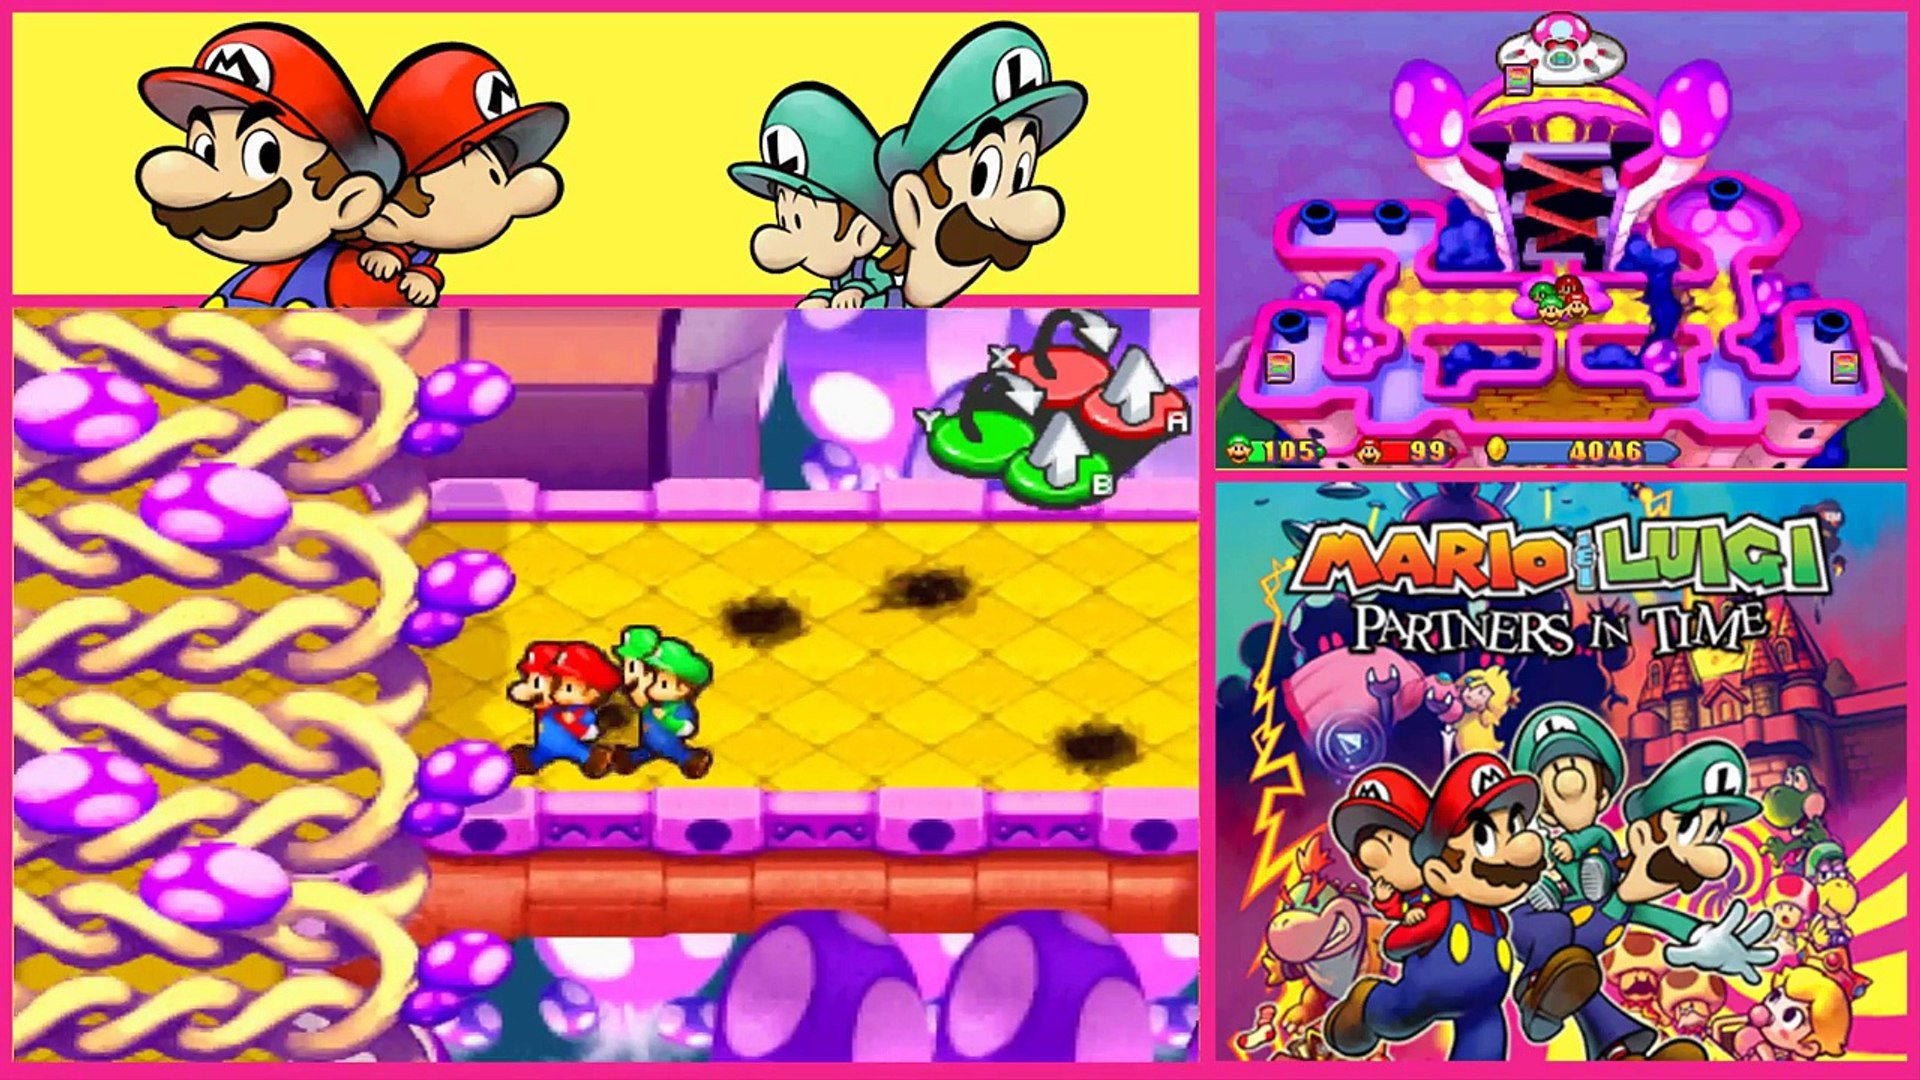 Mario Luigi Partners In Time Gameplay Walkthrough